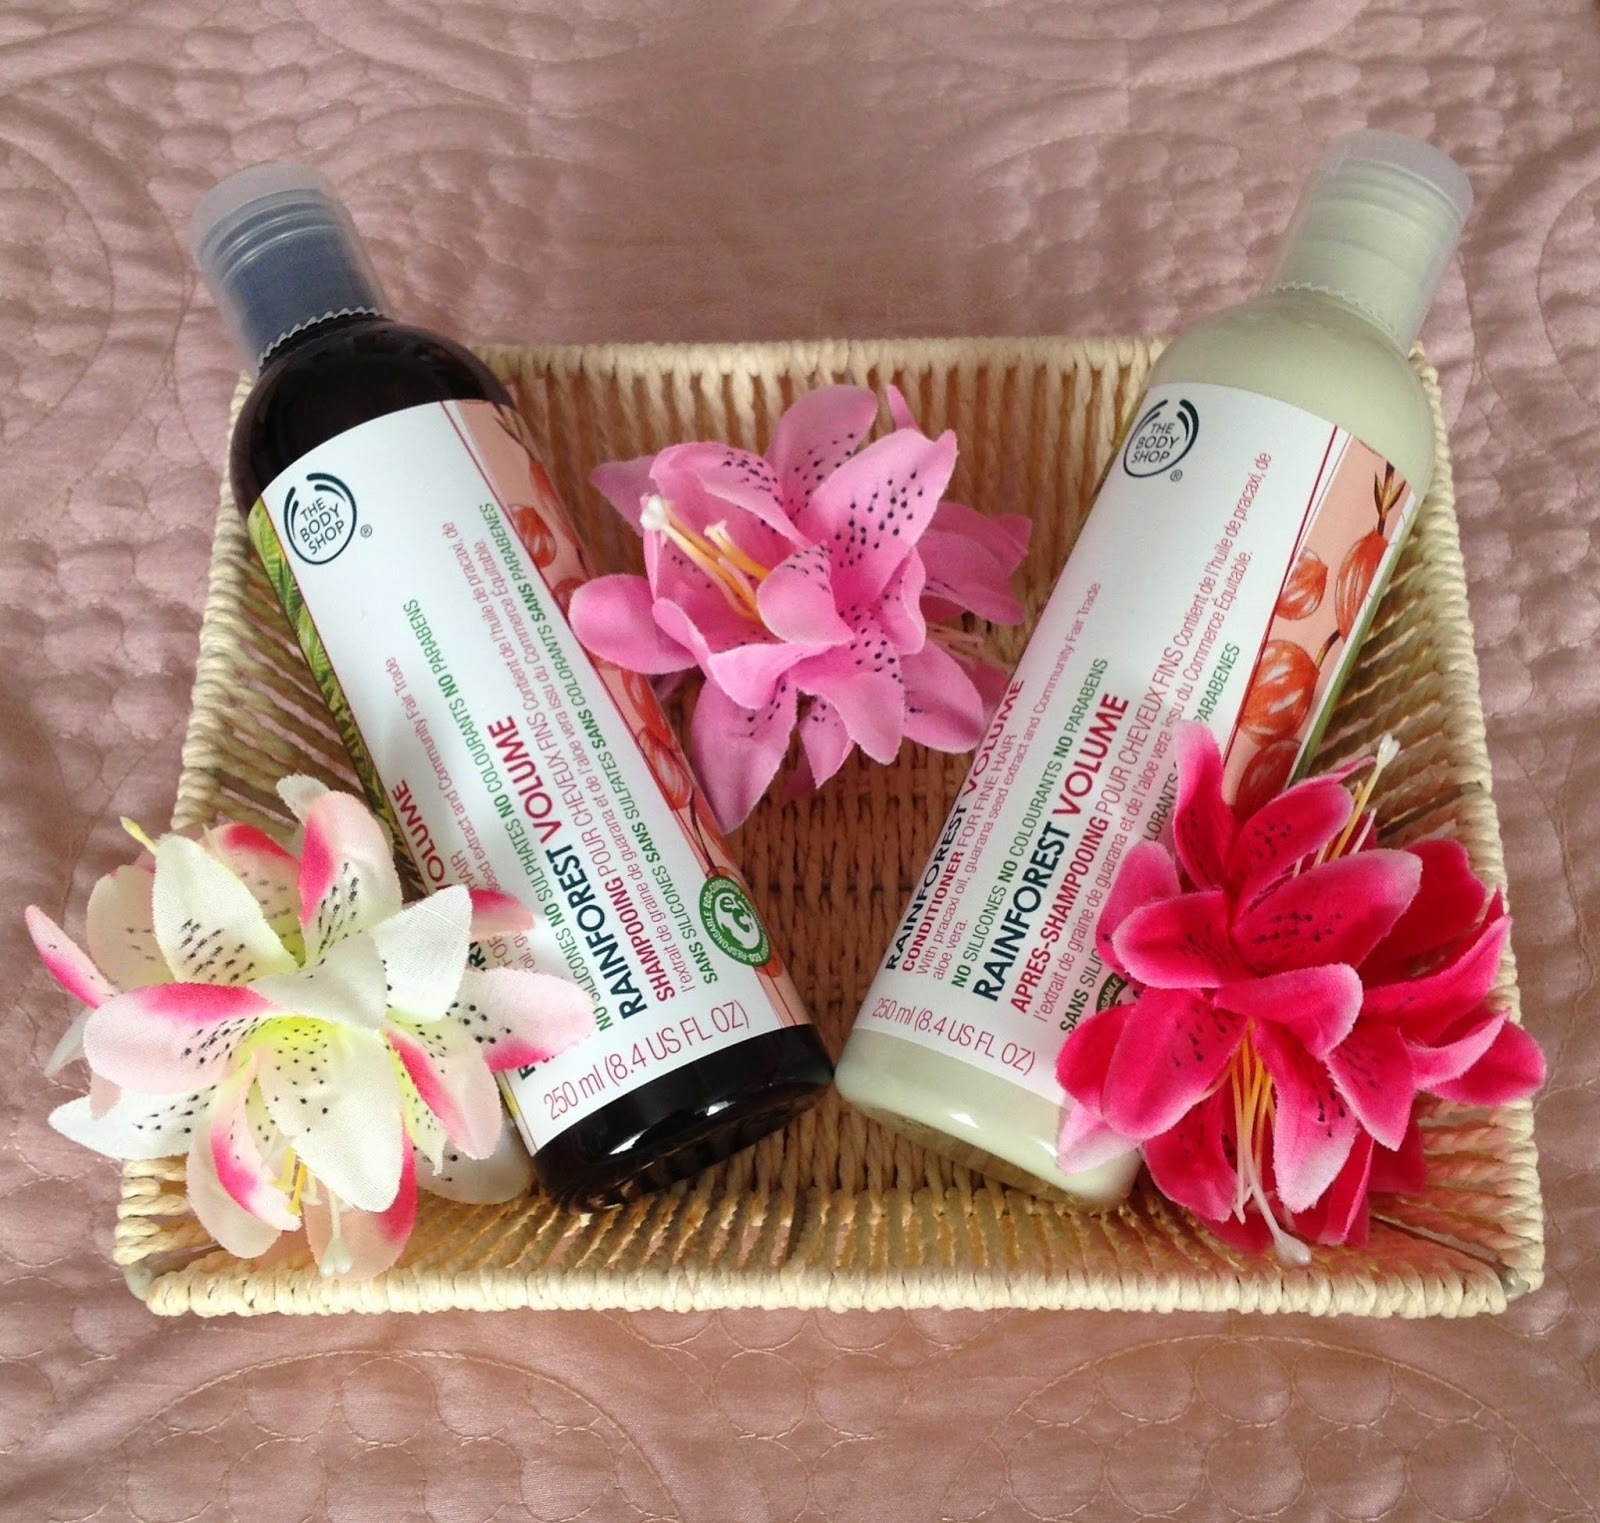 The Body Shop Rainforest Volumising Shampoo and Conditioner